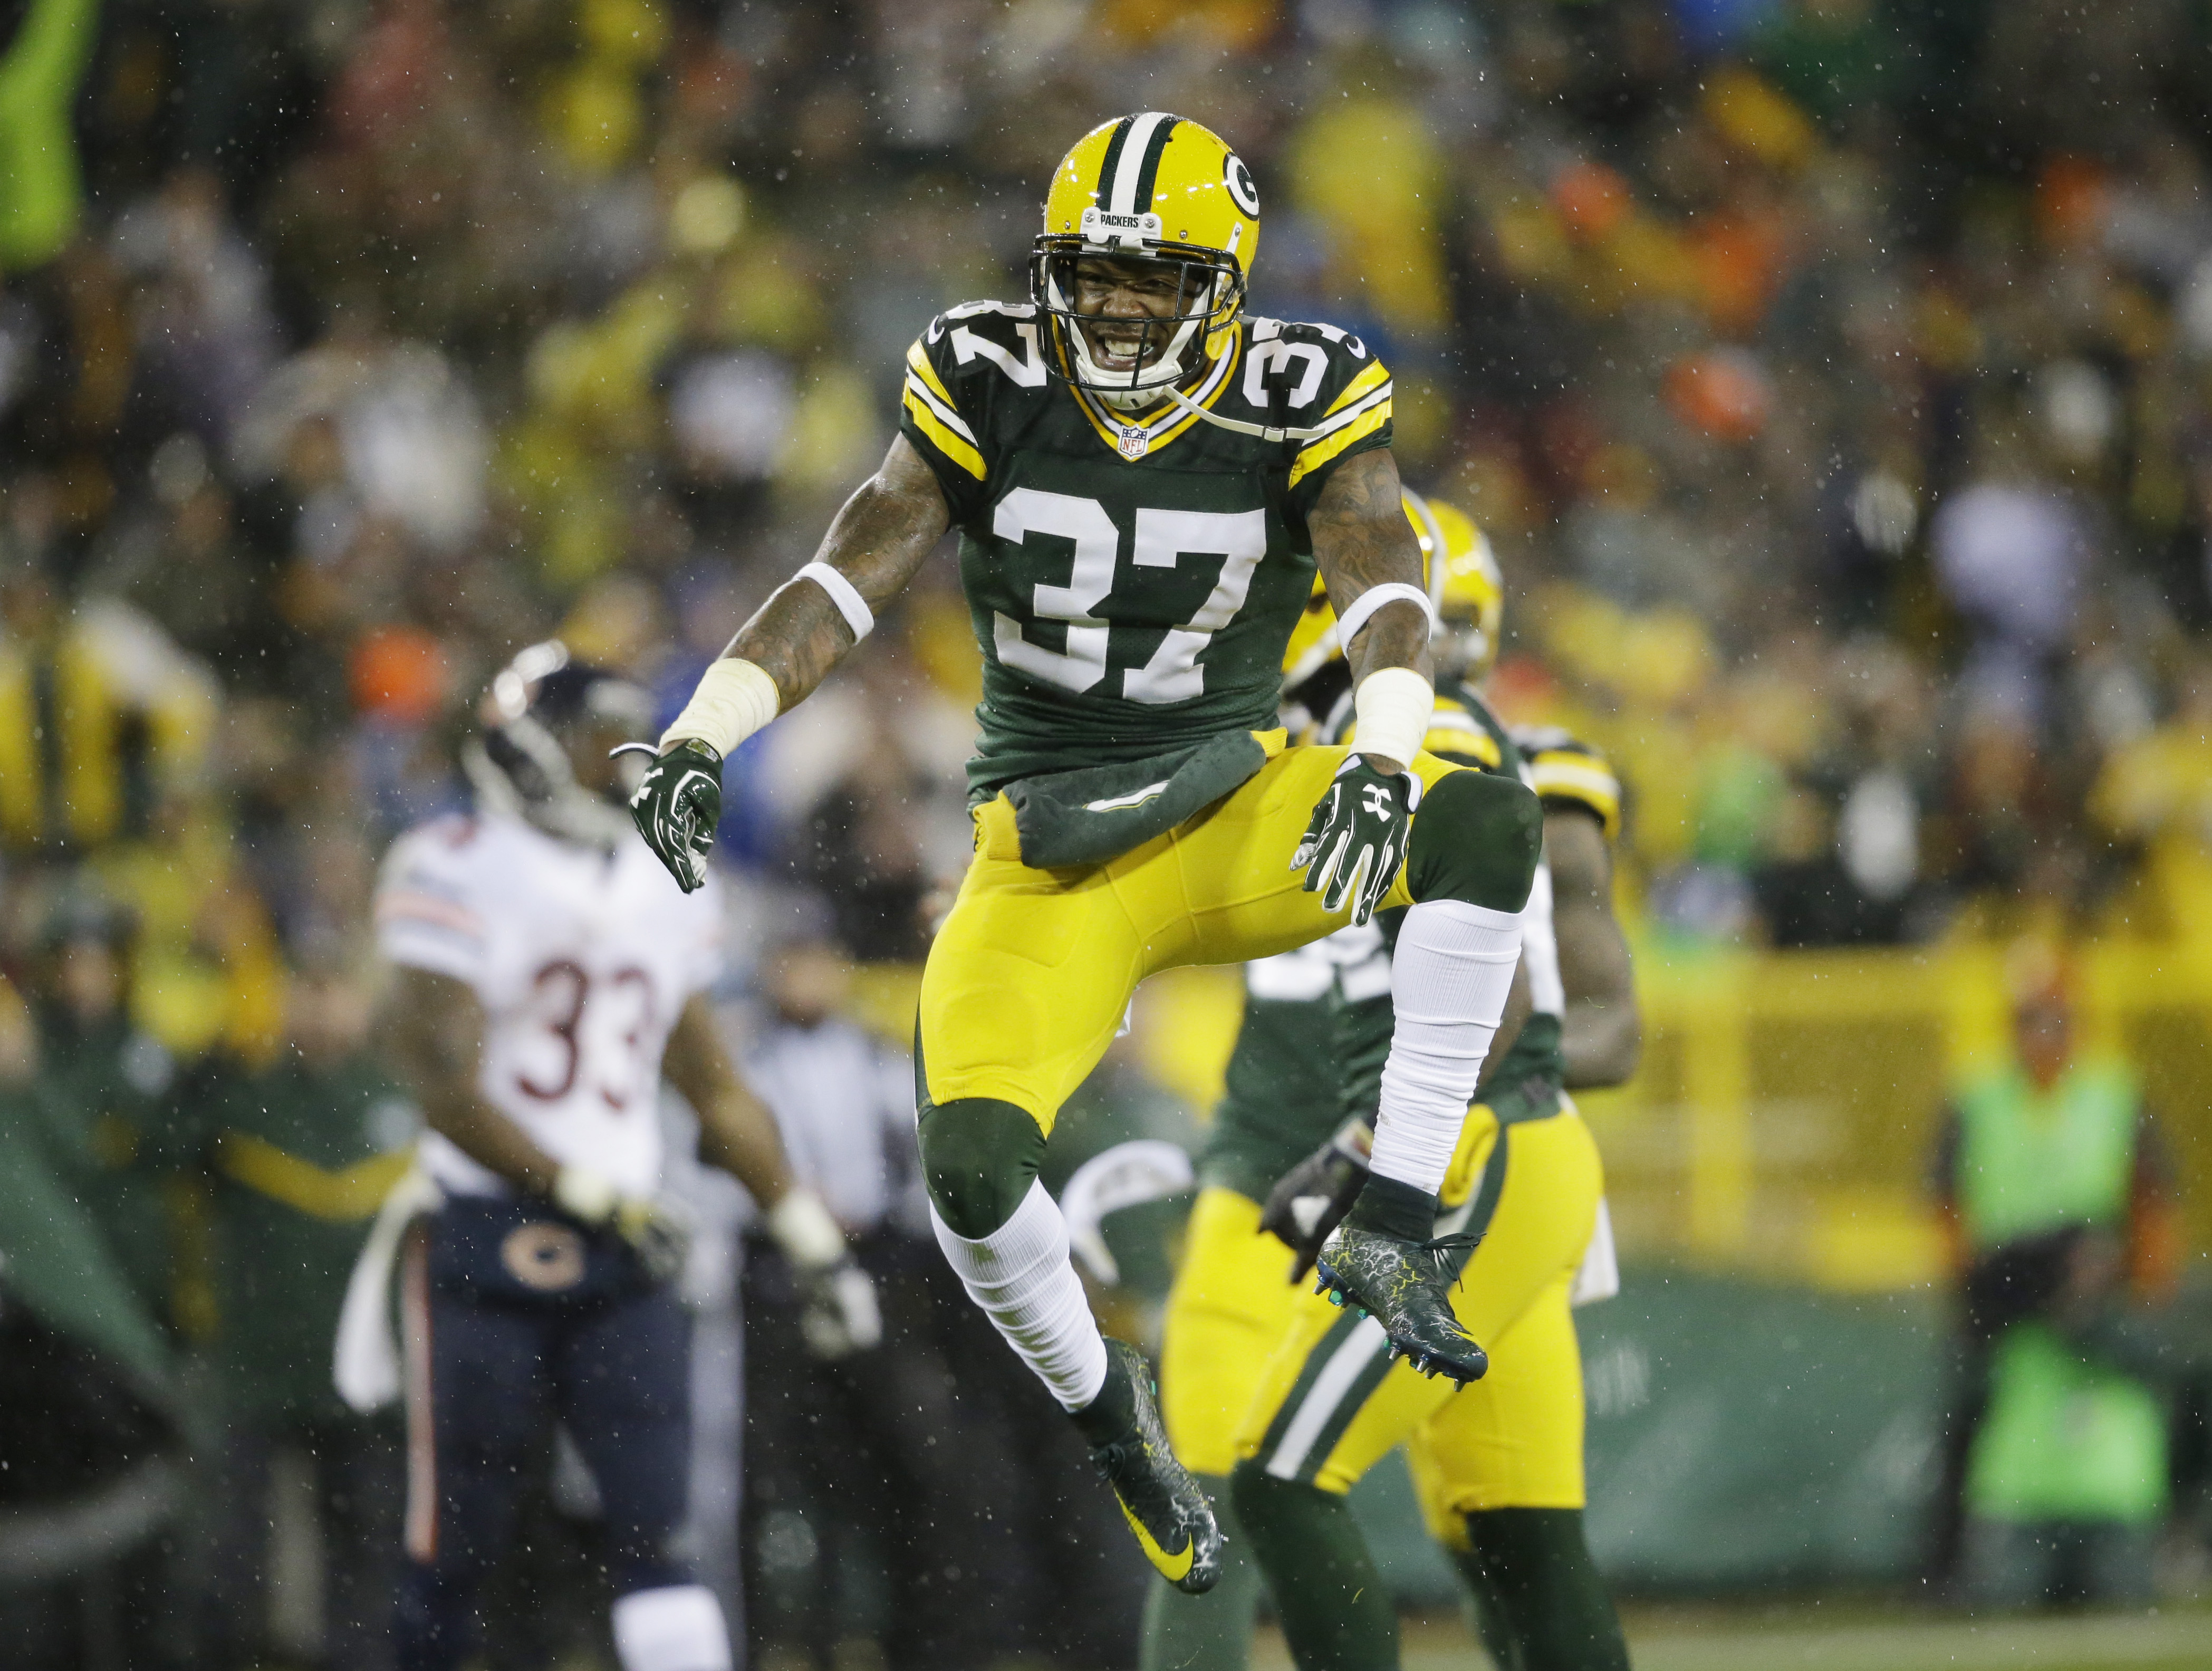 FILE - In this Nov. 26, 2015, file photo, Green Bay Packers' Sam Shields celebrates his teammate Quinten Rollins' sack of Chicago Bears quarterback Jay Cutler during the second half of an NFL football game, in Green Bay, Wis. Well here's a change for the